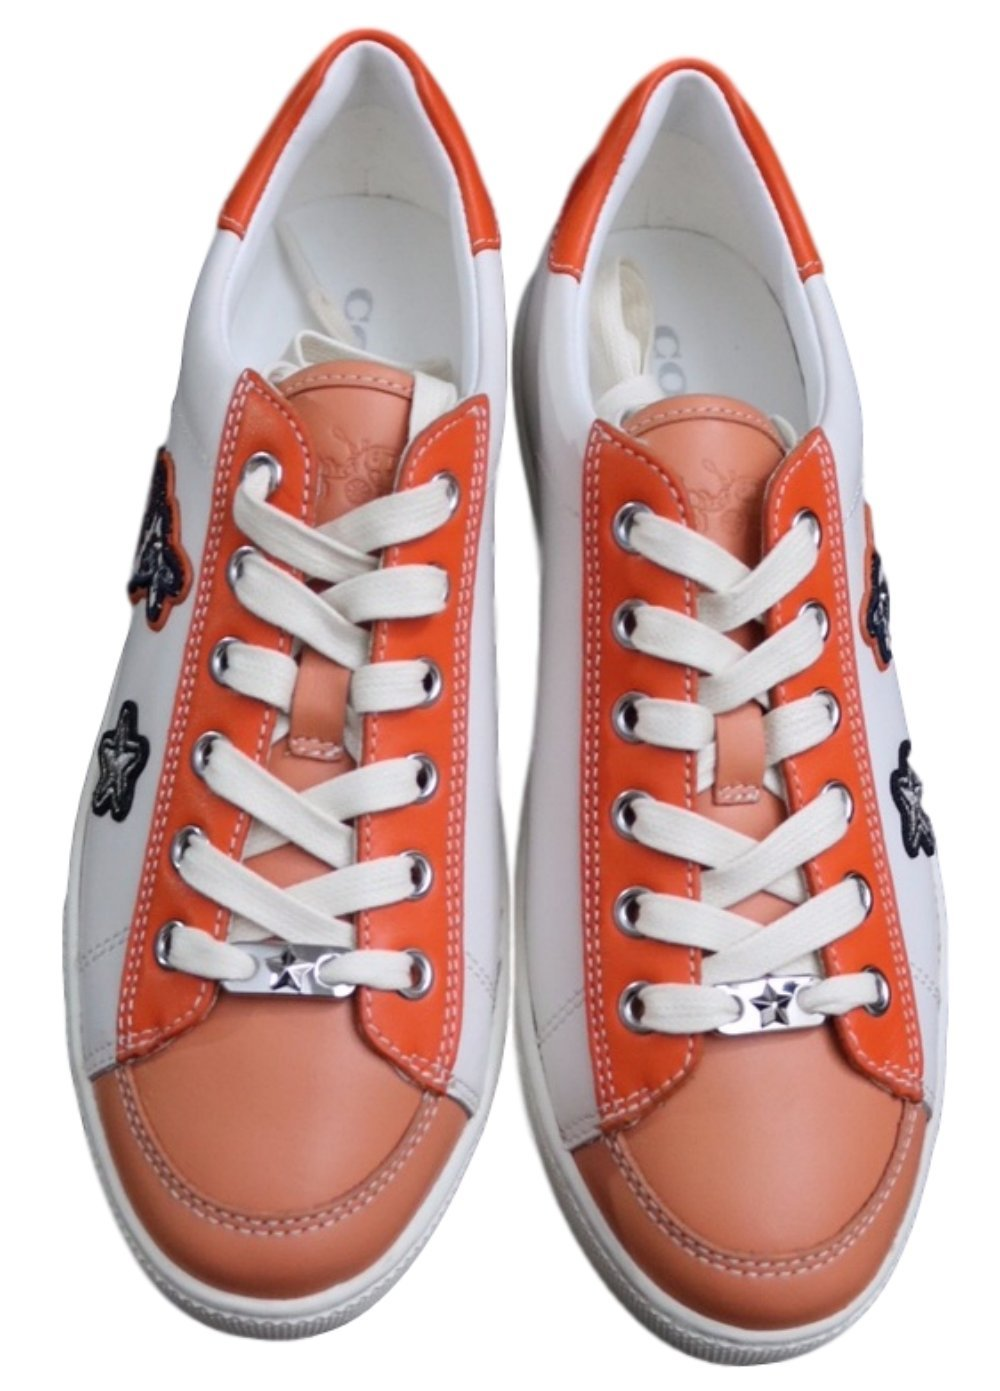 Coach Porter Lace Up Sneakers (8, white/coral)